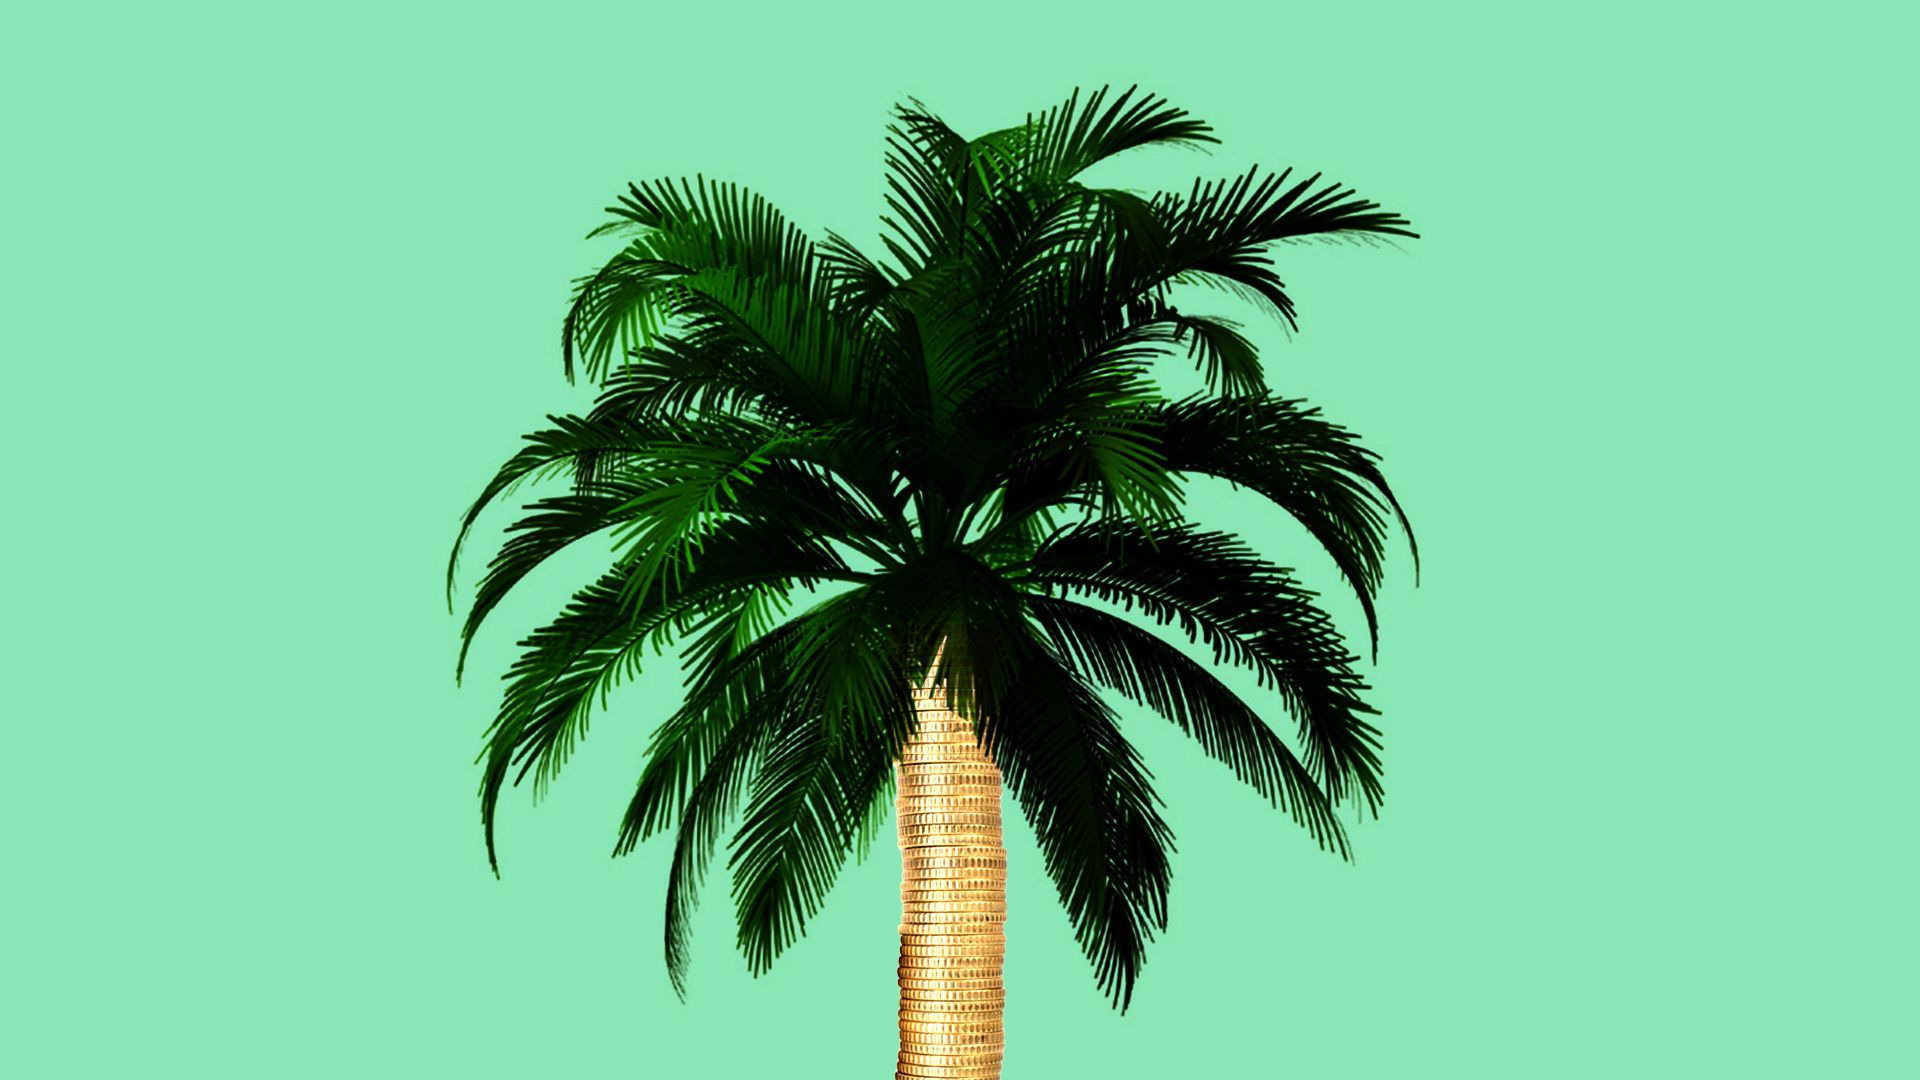 Illustration of a palm tree with a stack of gold coins as the trunk